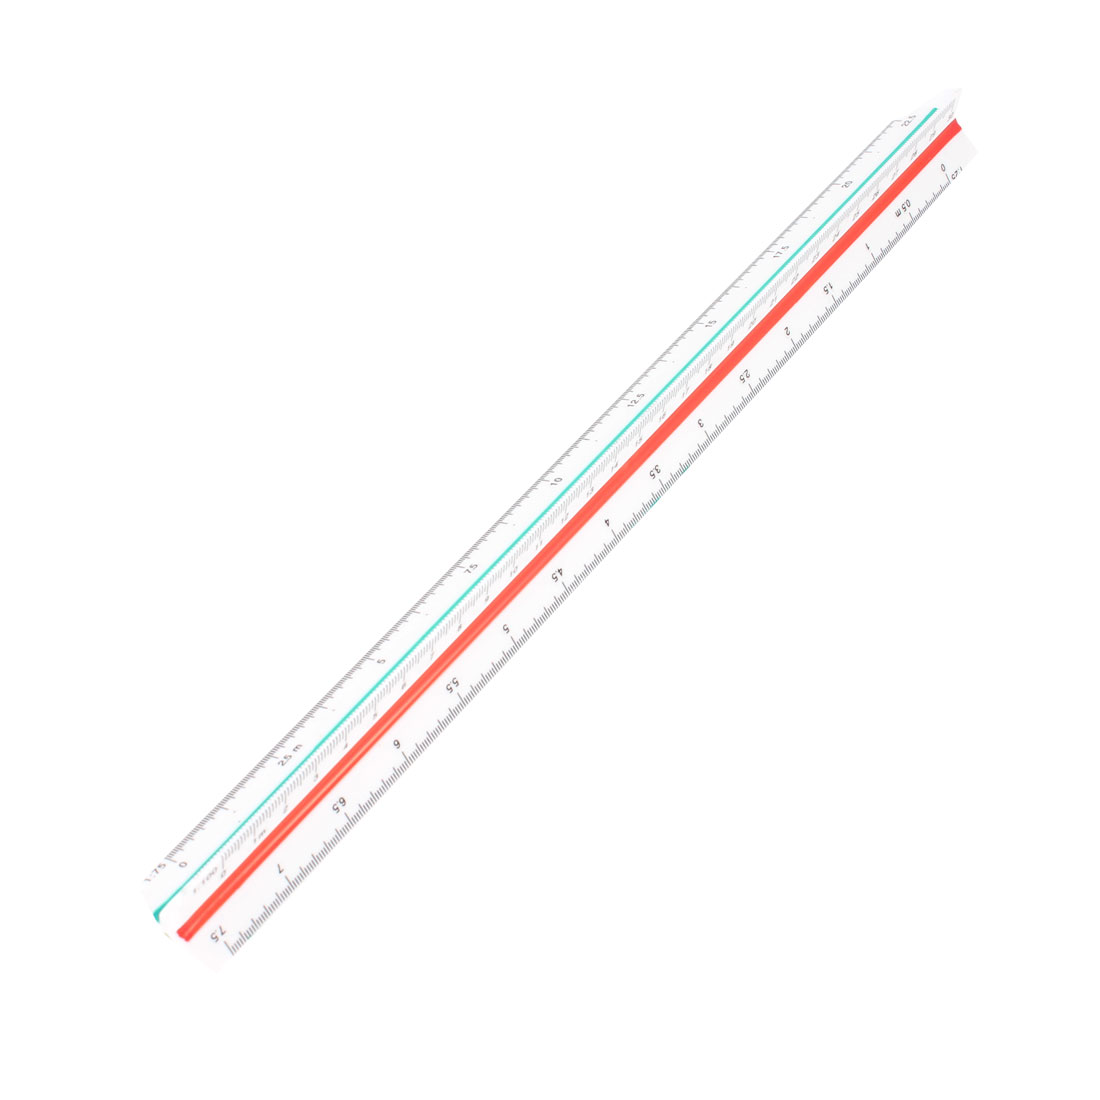 Draughtsman Architect Triangular Triangle Metric Scale Ruler 1:20 1:25 1:50 1:75 1:100 1:125